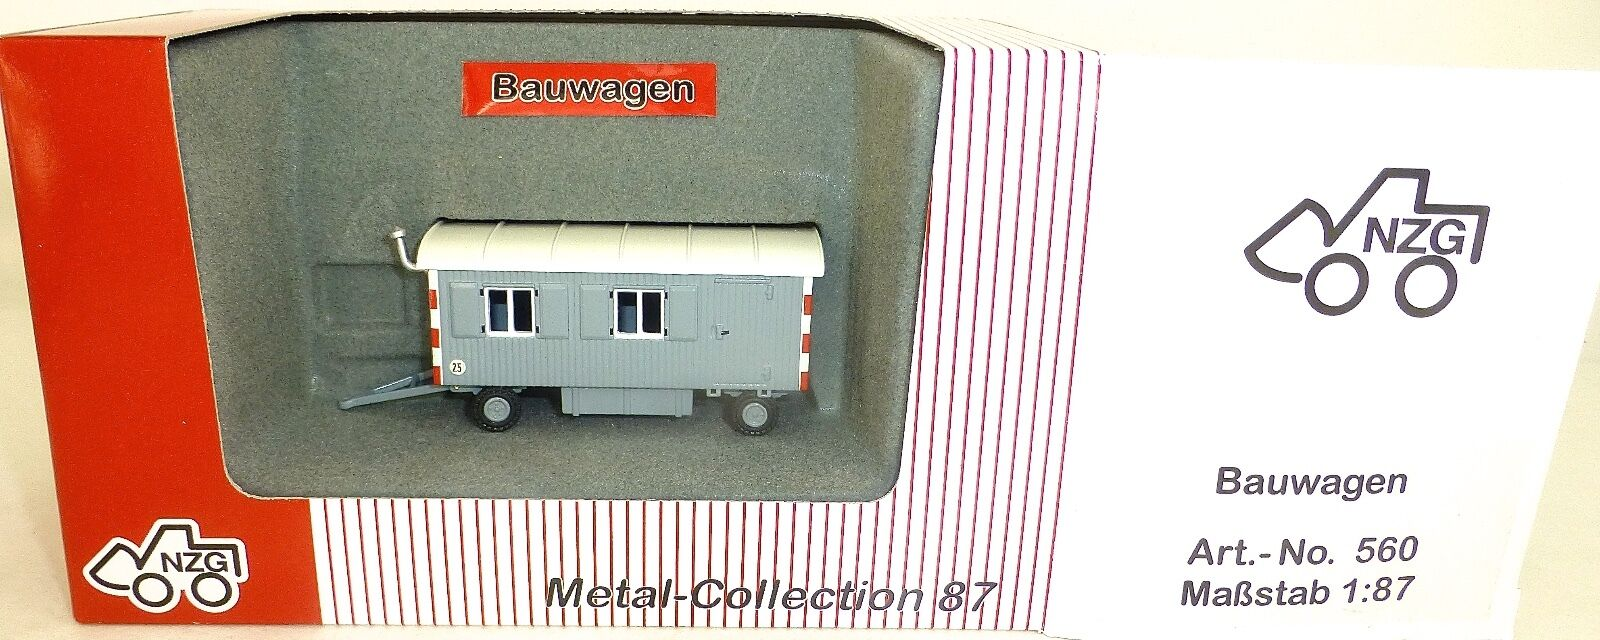 Bauwagen super super super Modell grey NZG 560 Metall Collection 1 87 OVP HA1 µ a346b8